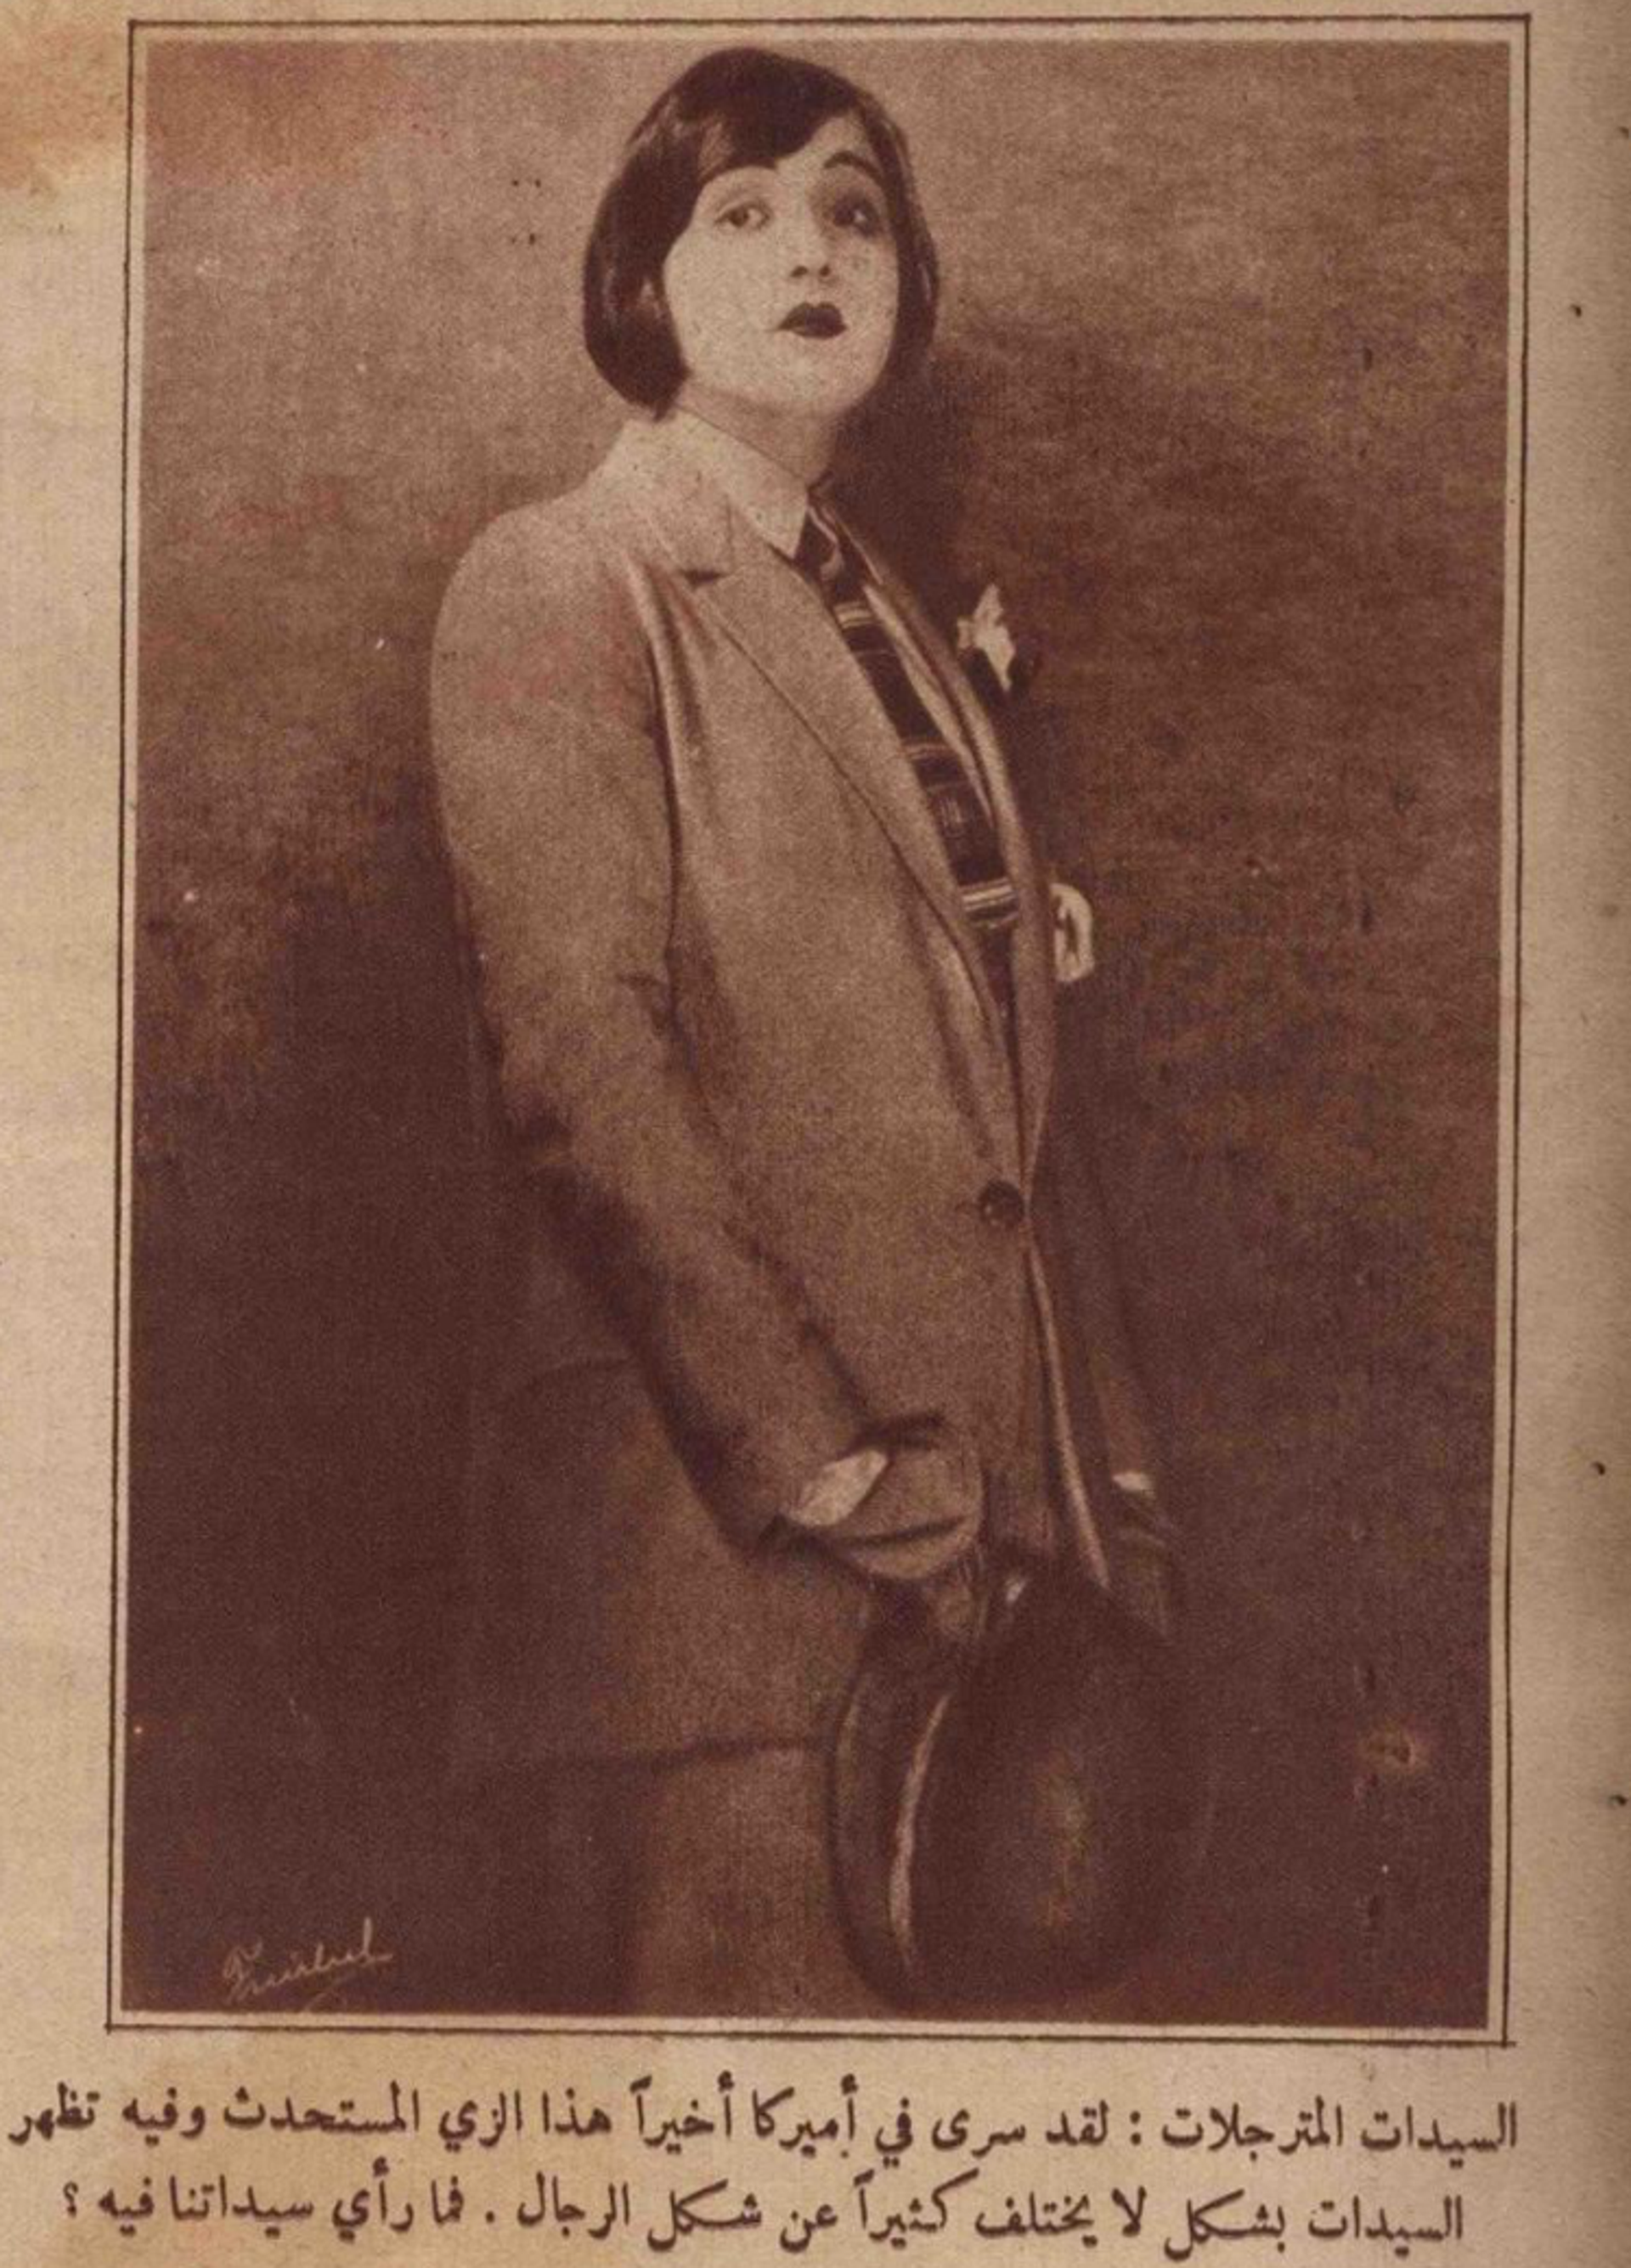 An Egyptian woman dressed as a man in a 1925 magazine article on the trend for women to dress as men.